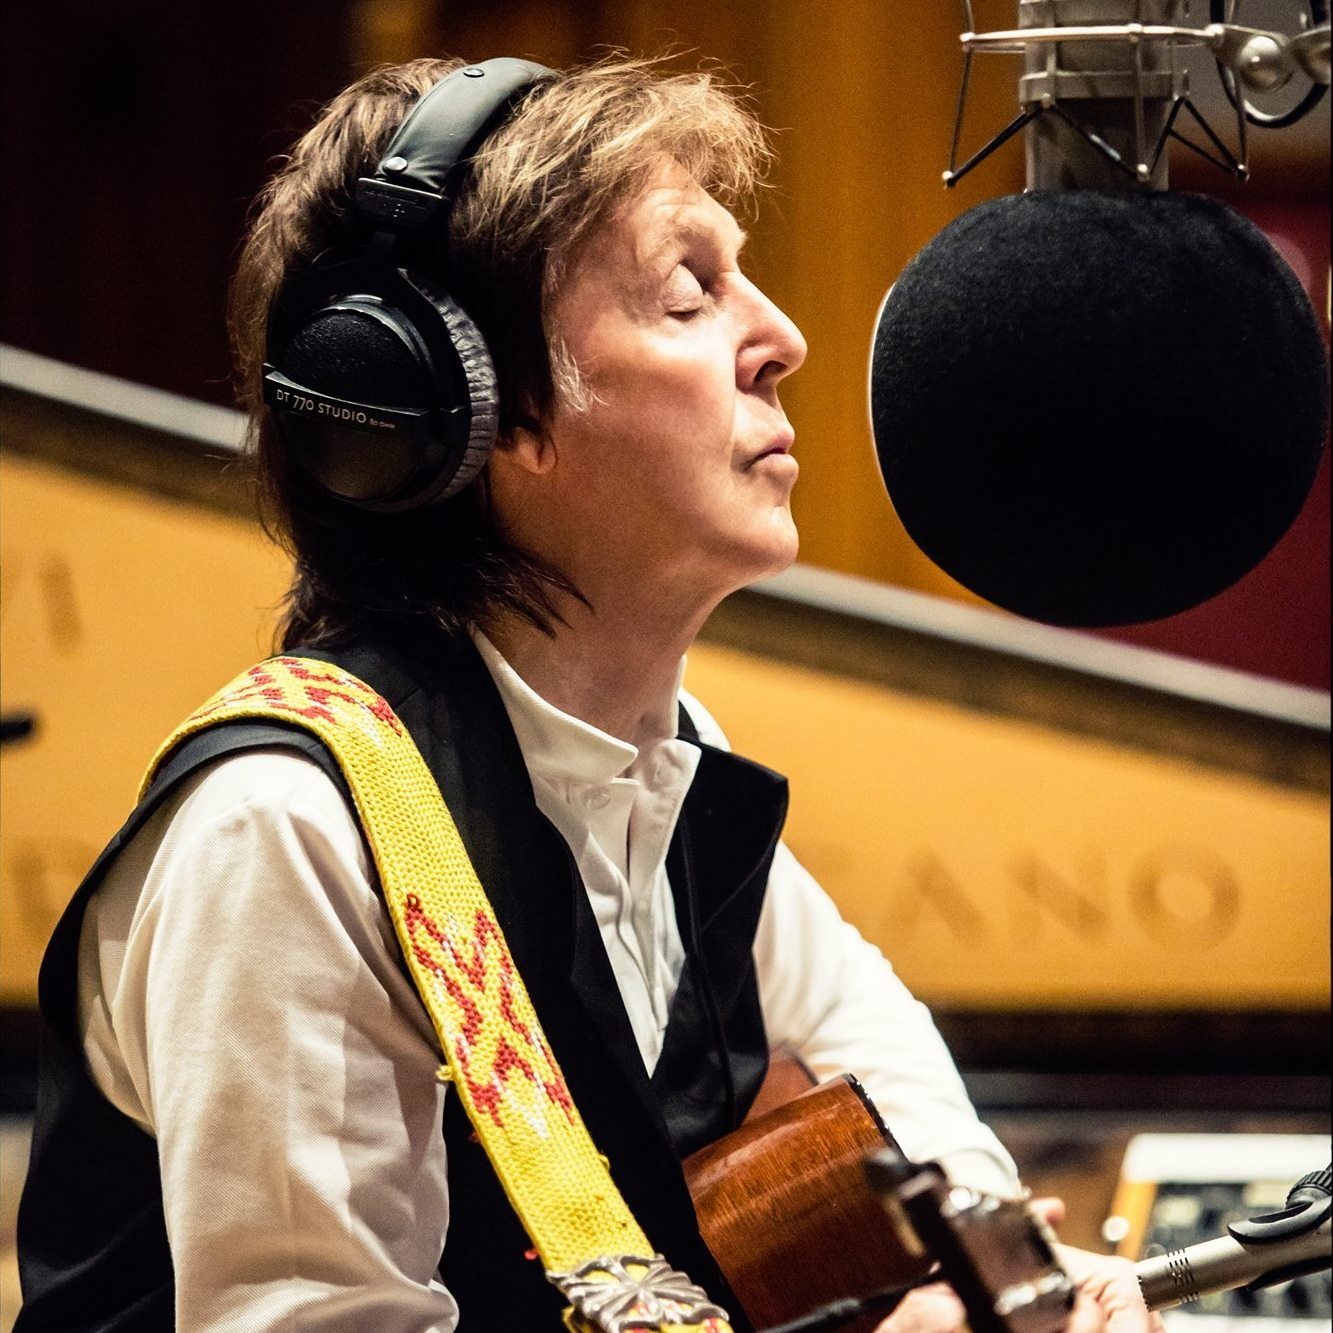 Paul McCartney releases new album Egypt Station as deluxe vinyl box set